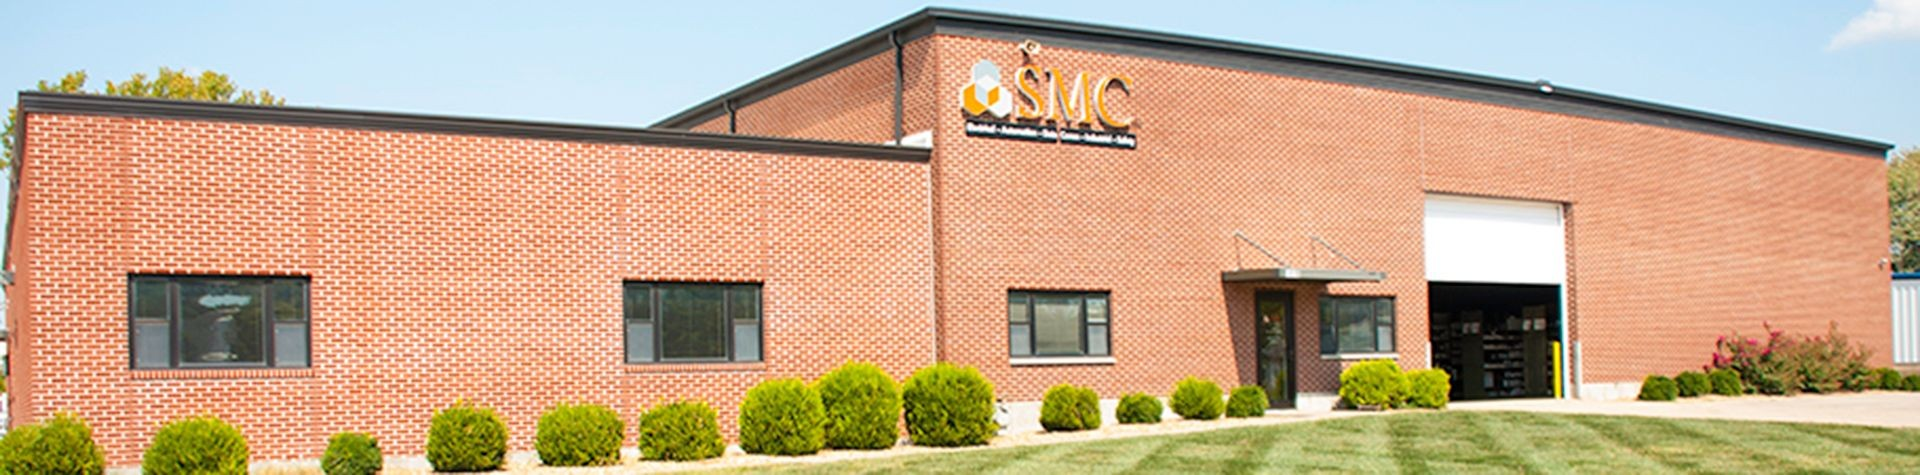 SMC Sedalia Missouri Branch